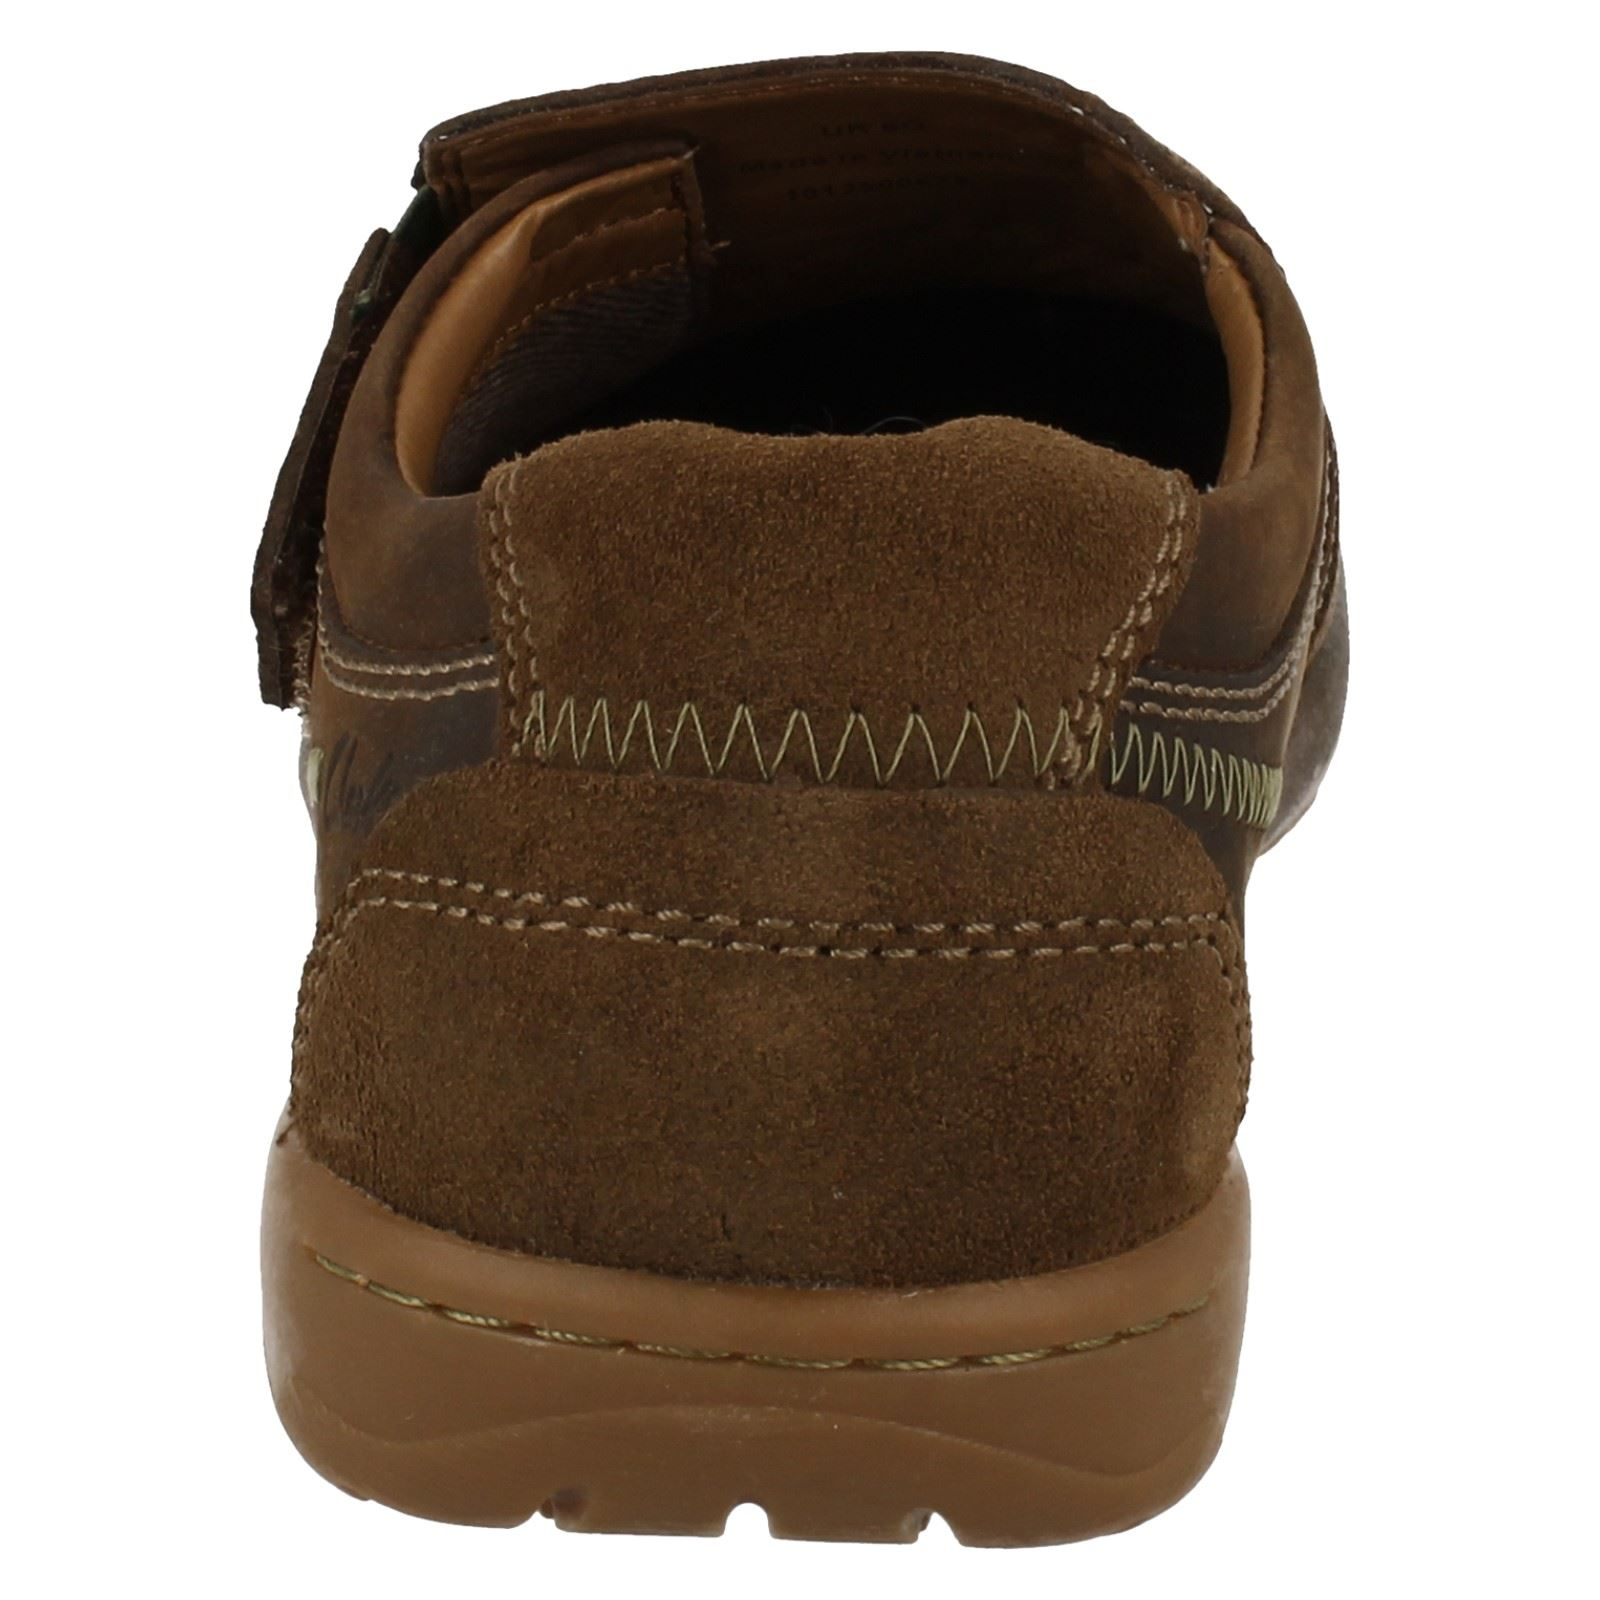 marrón Casual Shoes Hombres Tabaco 'ridgeway Clarks Step' 5wP5SqZF